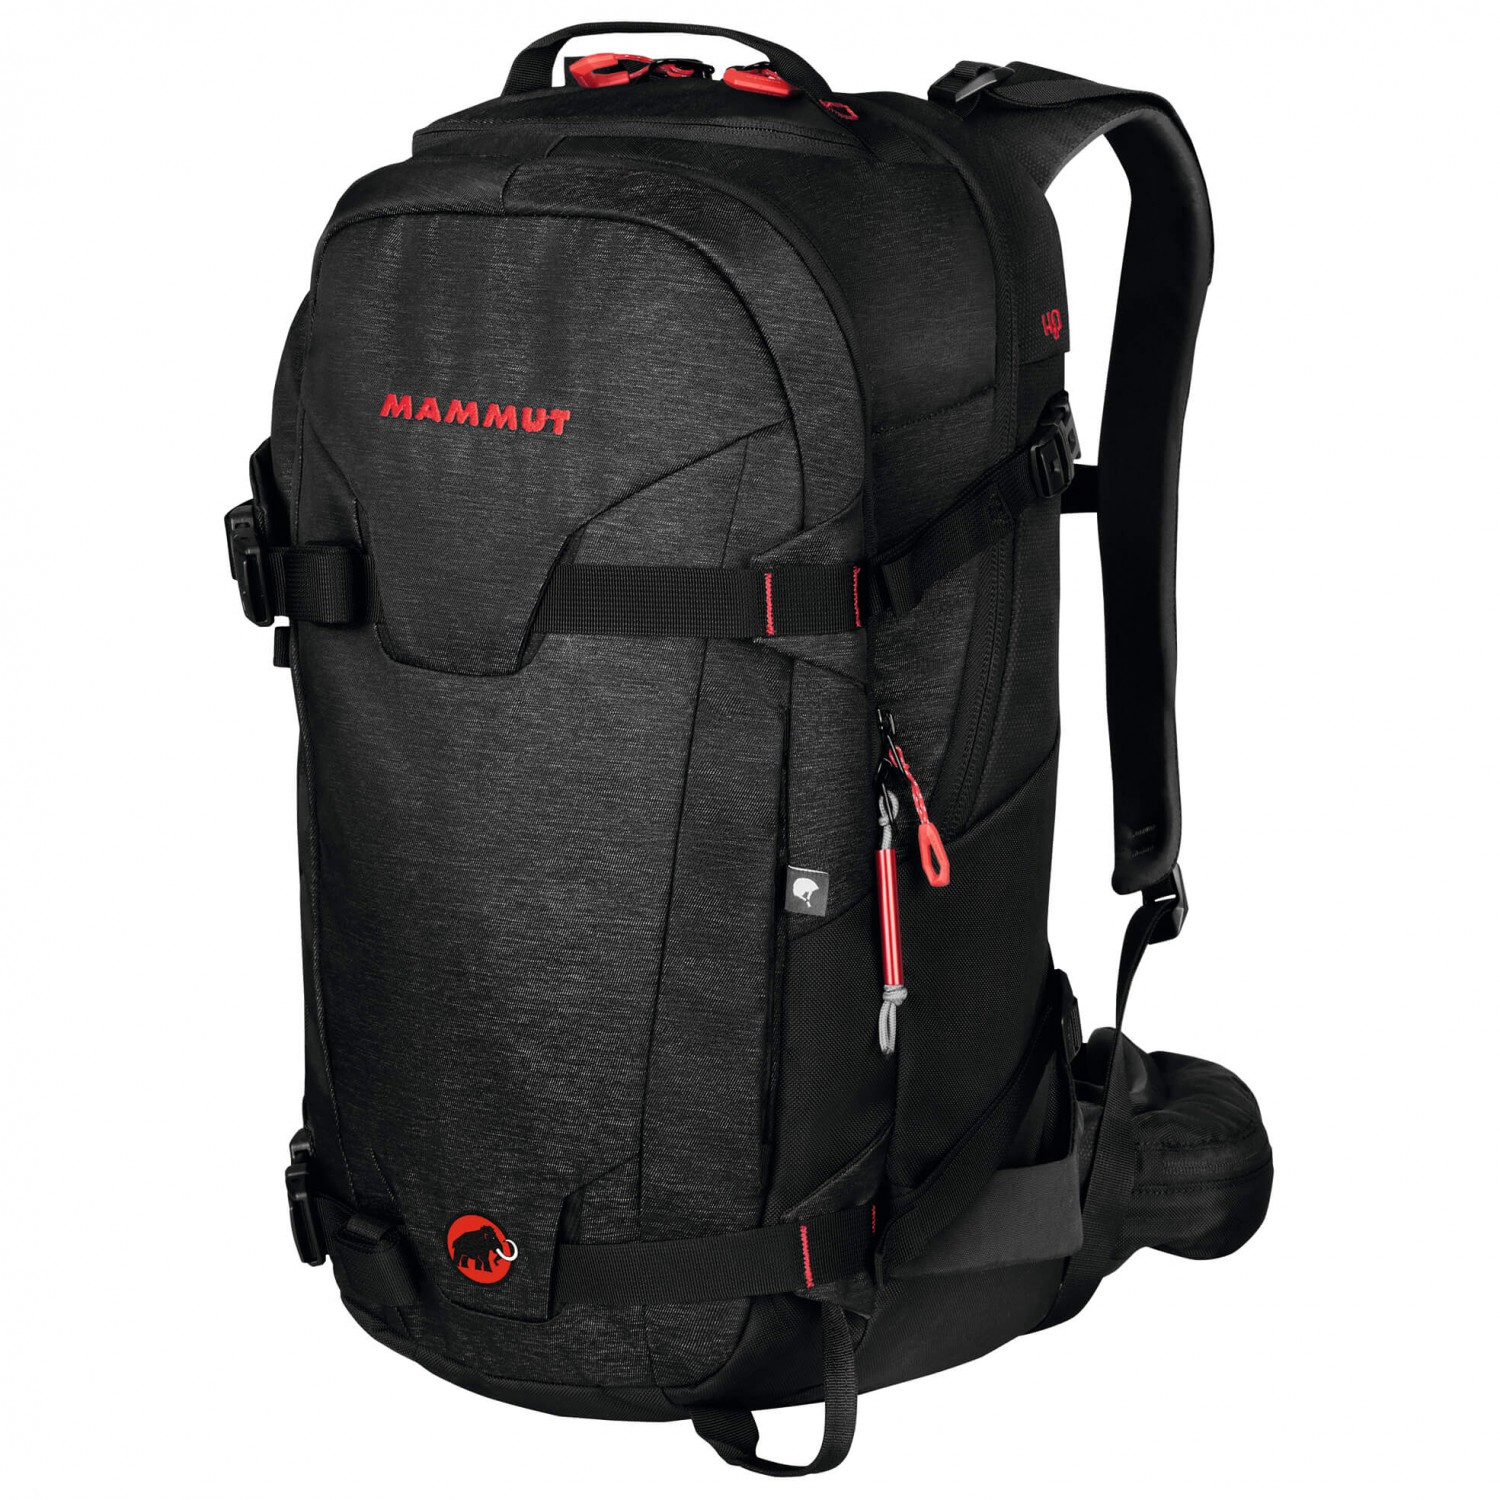 Comparison of 5 Backpacks for Ski Touring